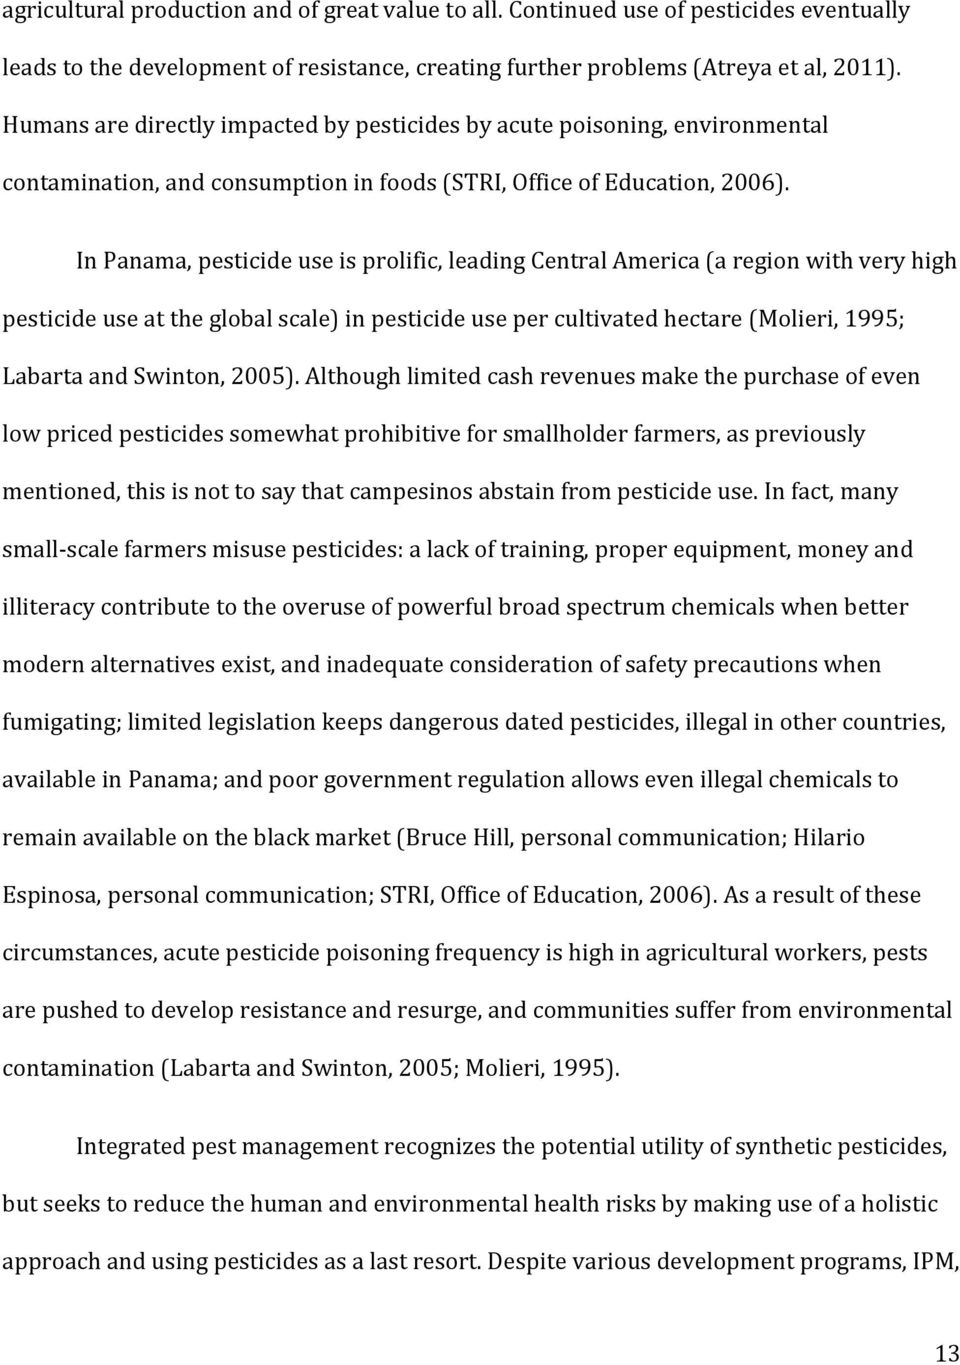 In Panama, pesticide use is prolific, leading Central America (a region with very high pesticide use at the global scale) in pesticide use per cultivated hectare (Molieri, 1995; Labarta and Swinton,